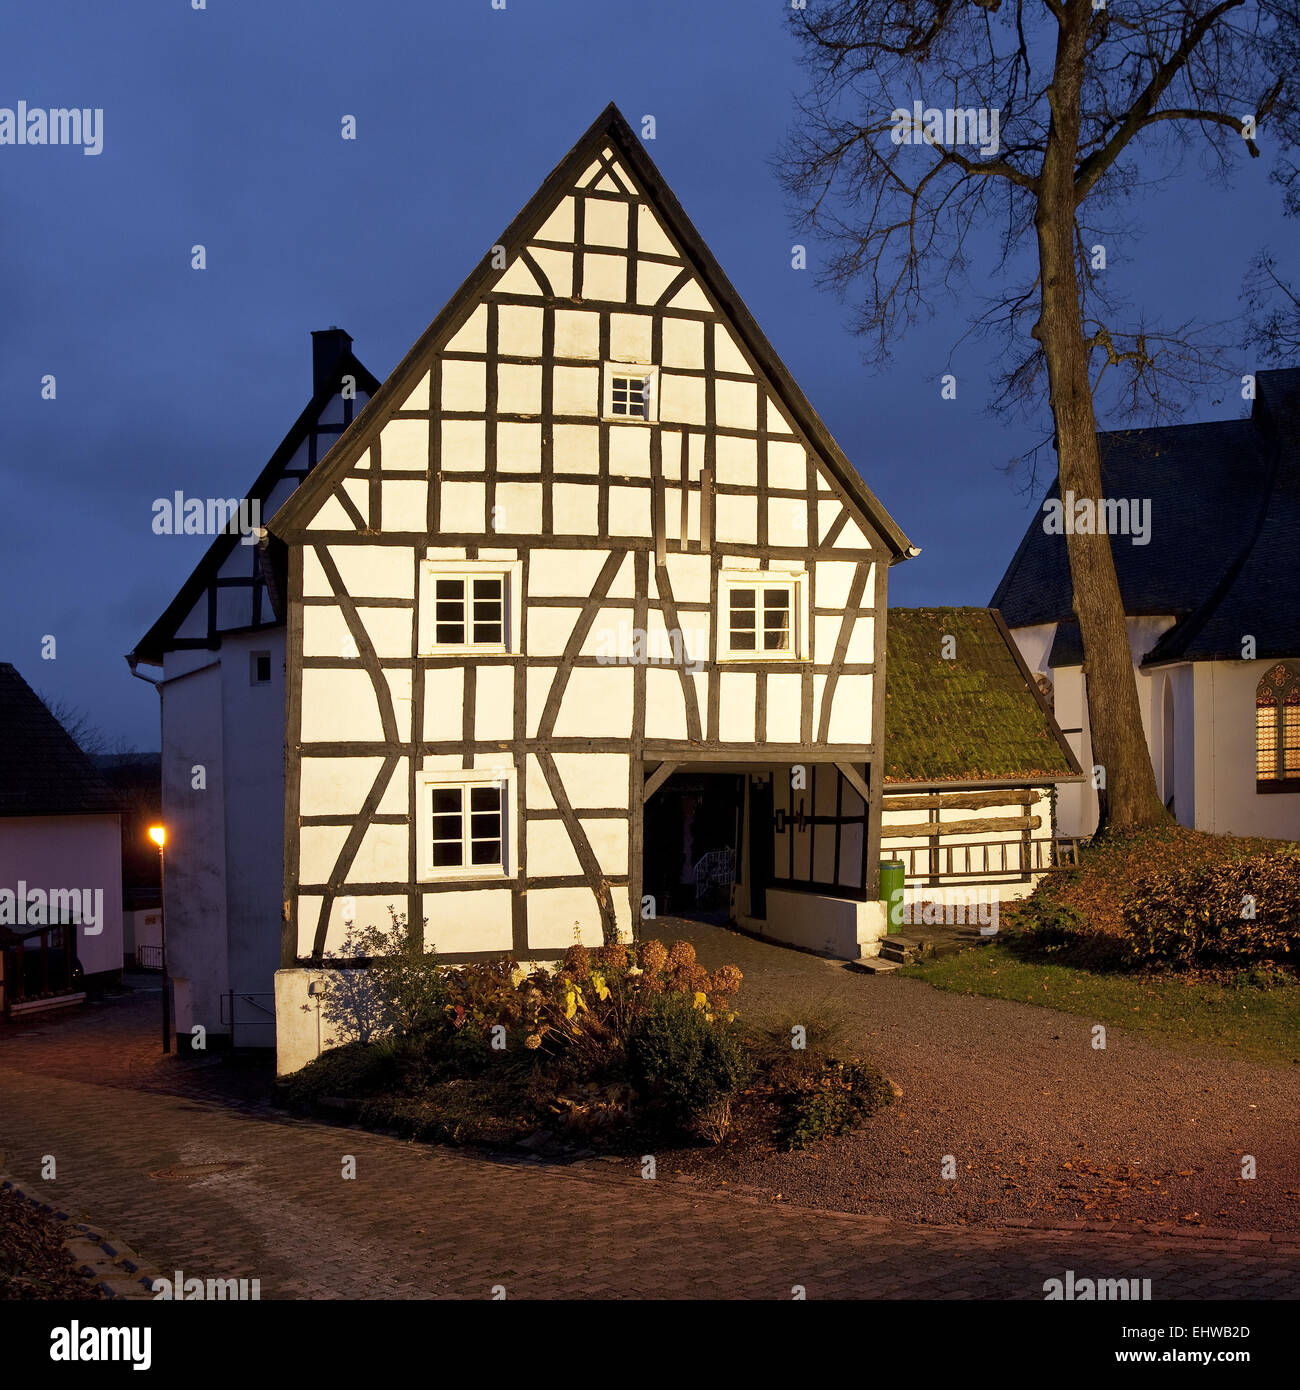 The spike in of Herscheid in Germany. - Stock Image